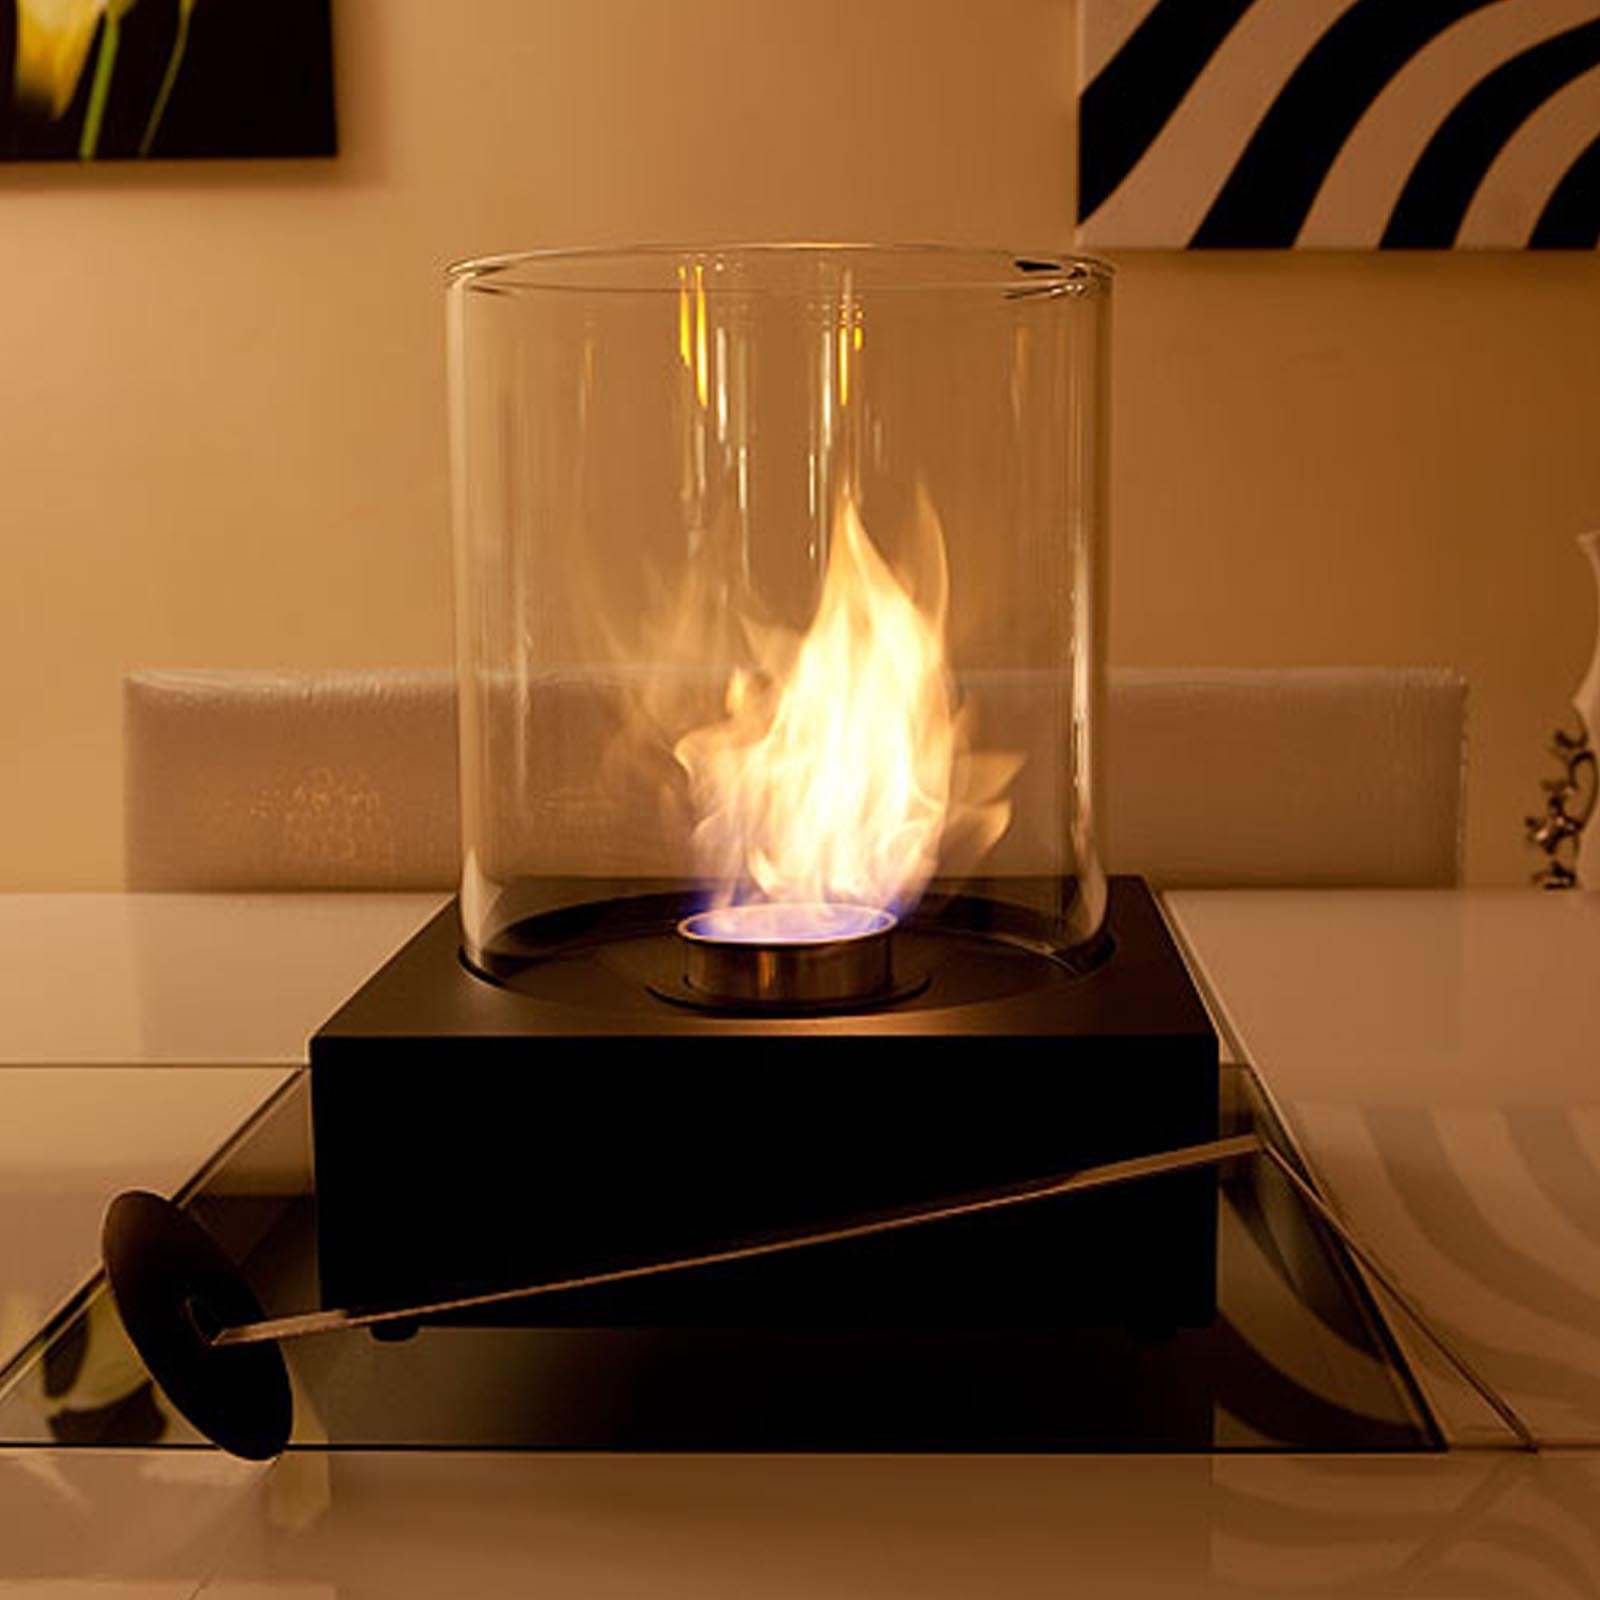 The Naked Flame Sphere Bio Ethanol Portable Fire